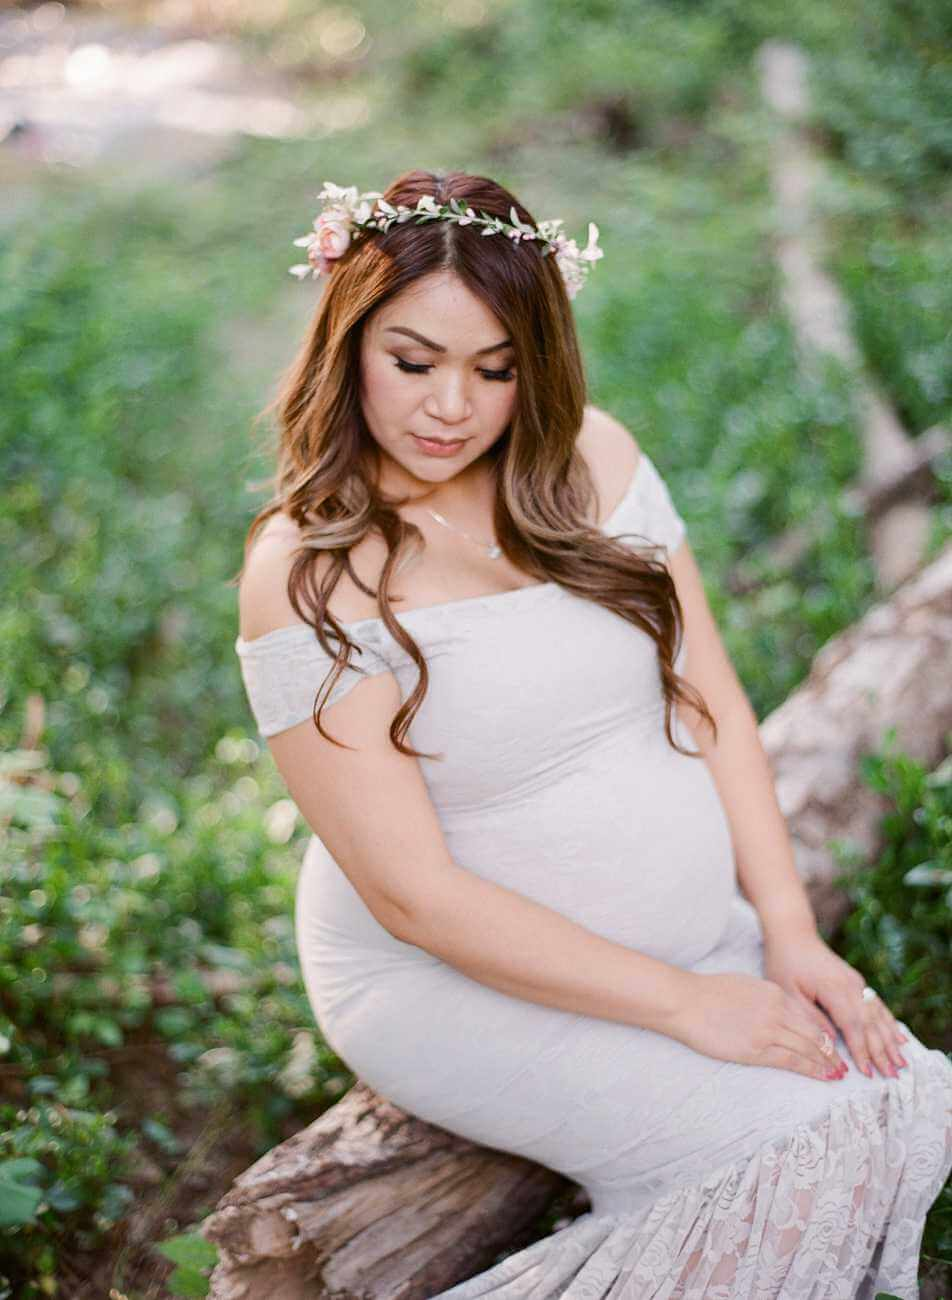 fresno-maternity-photographer-elisabeth-kate-studio_0203.jpg